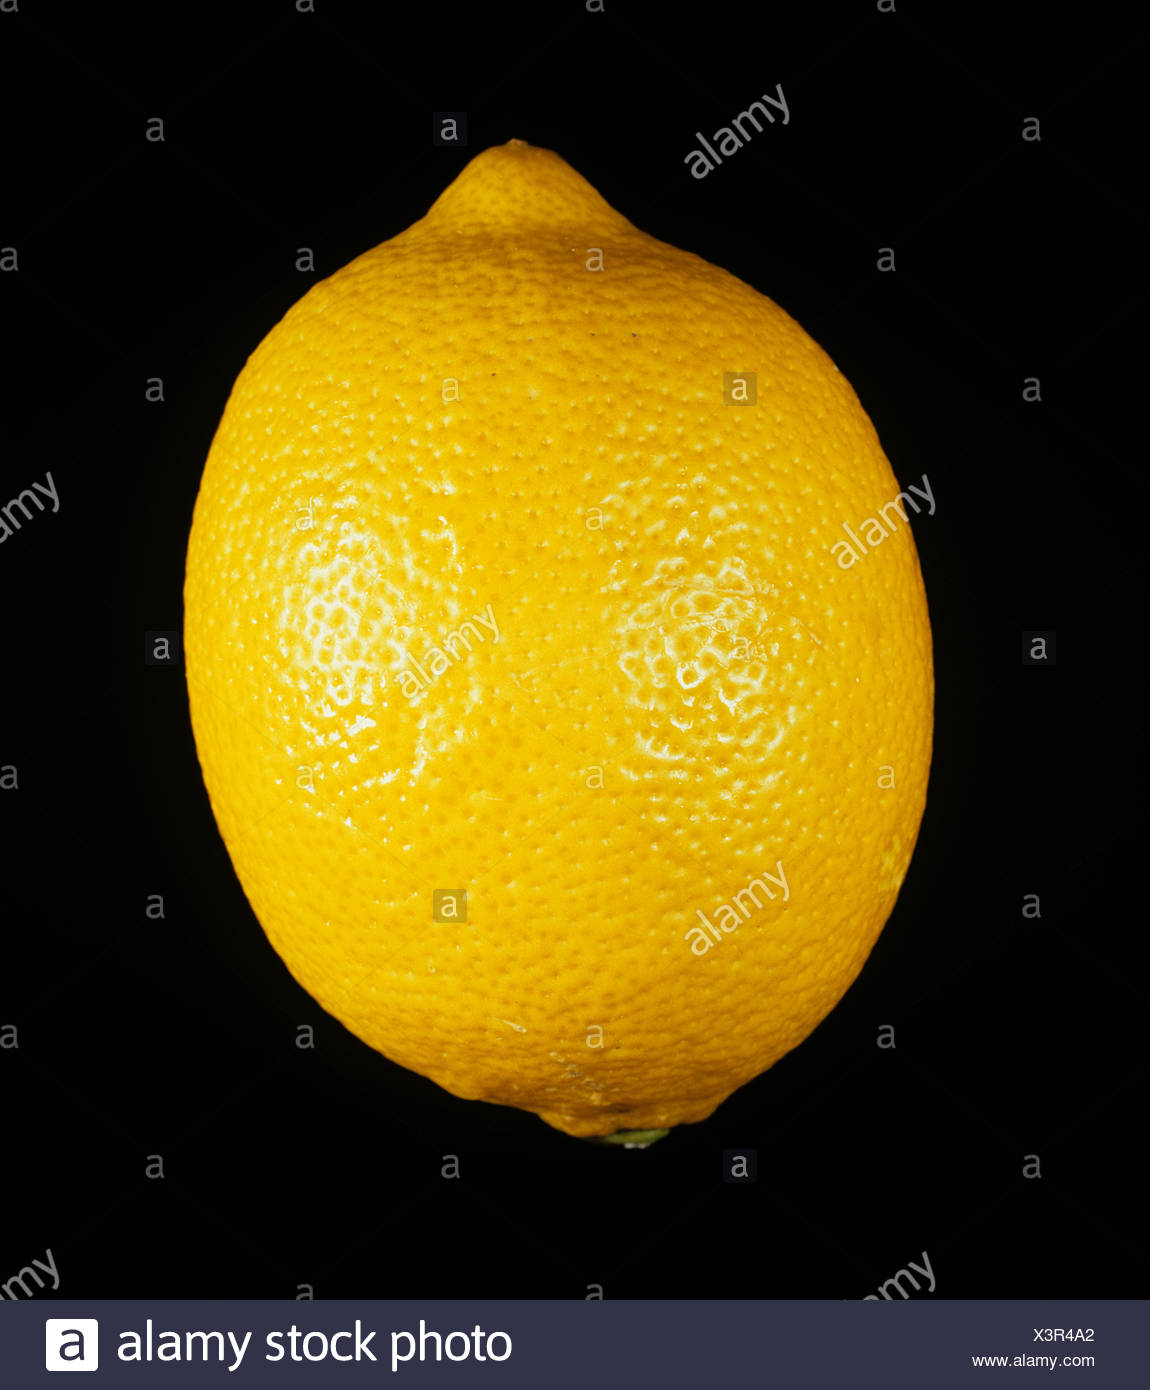 Whole citrus fruit lemon variety Eureka - Stock Image